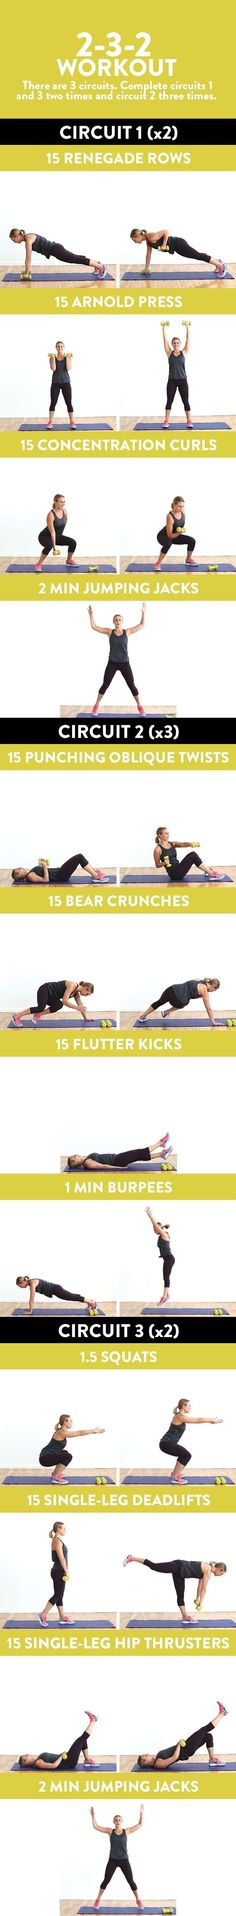 Grab a pair of dumbbells and do the 2-3-2 Workout for a 45-minute, circuit-based strength workout that incorporates bursts of cardio.